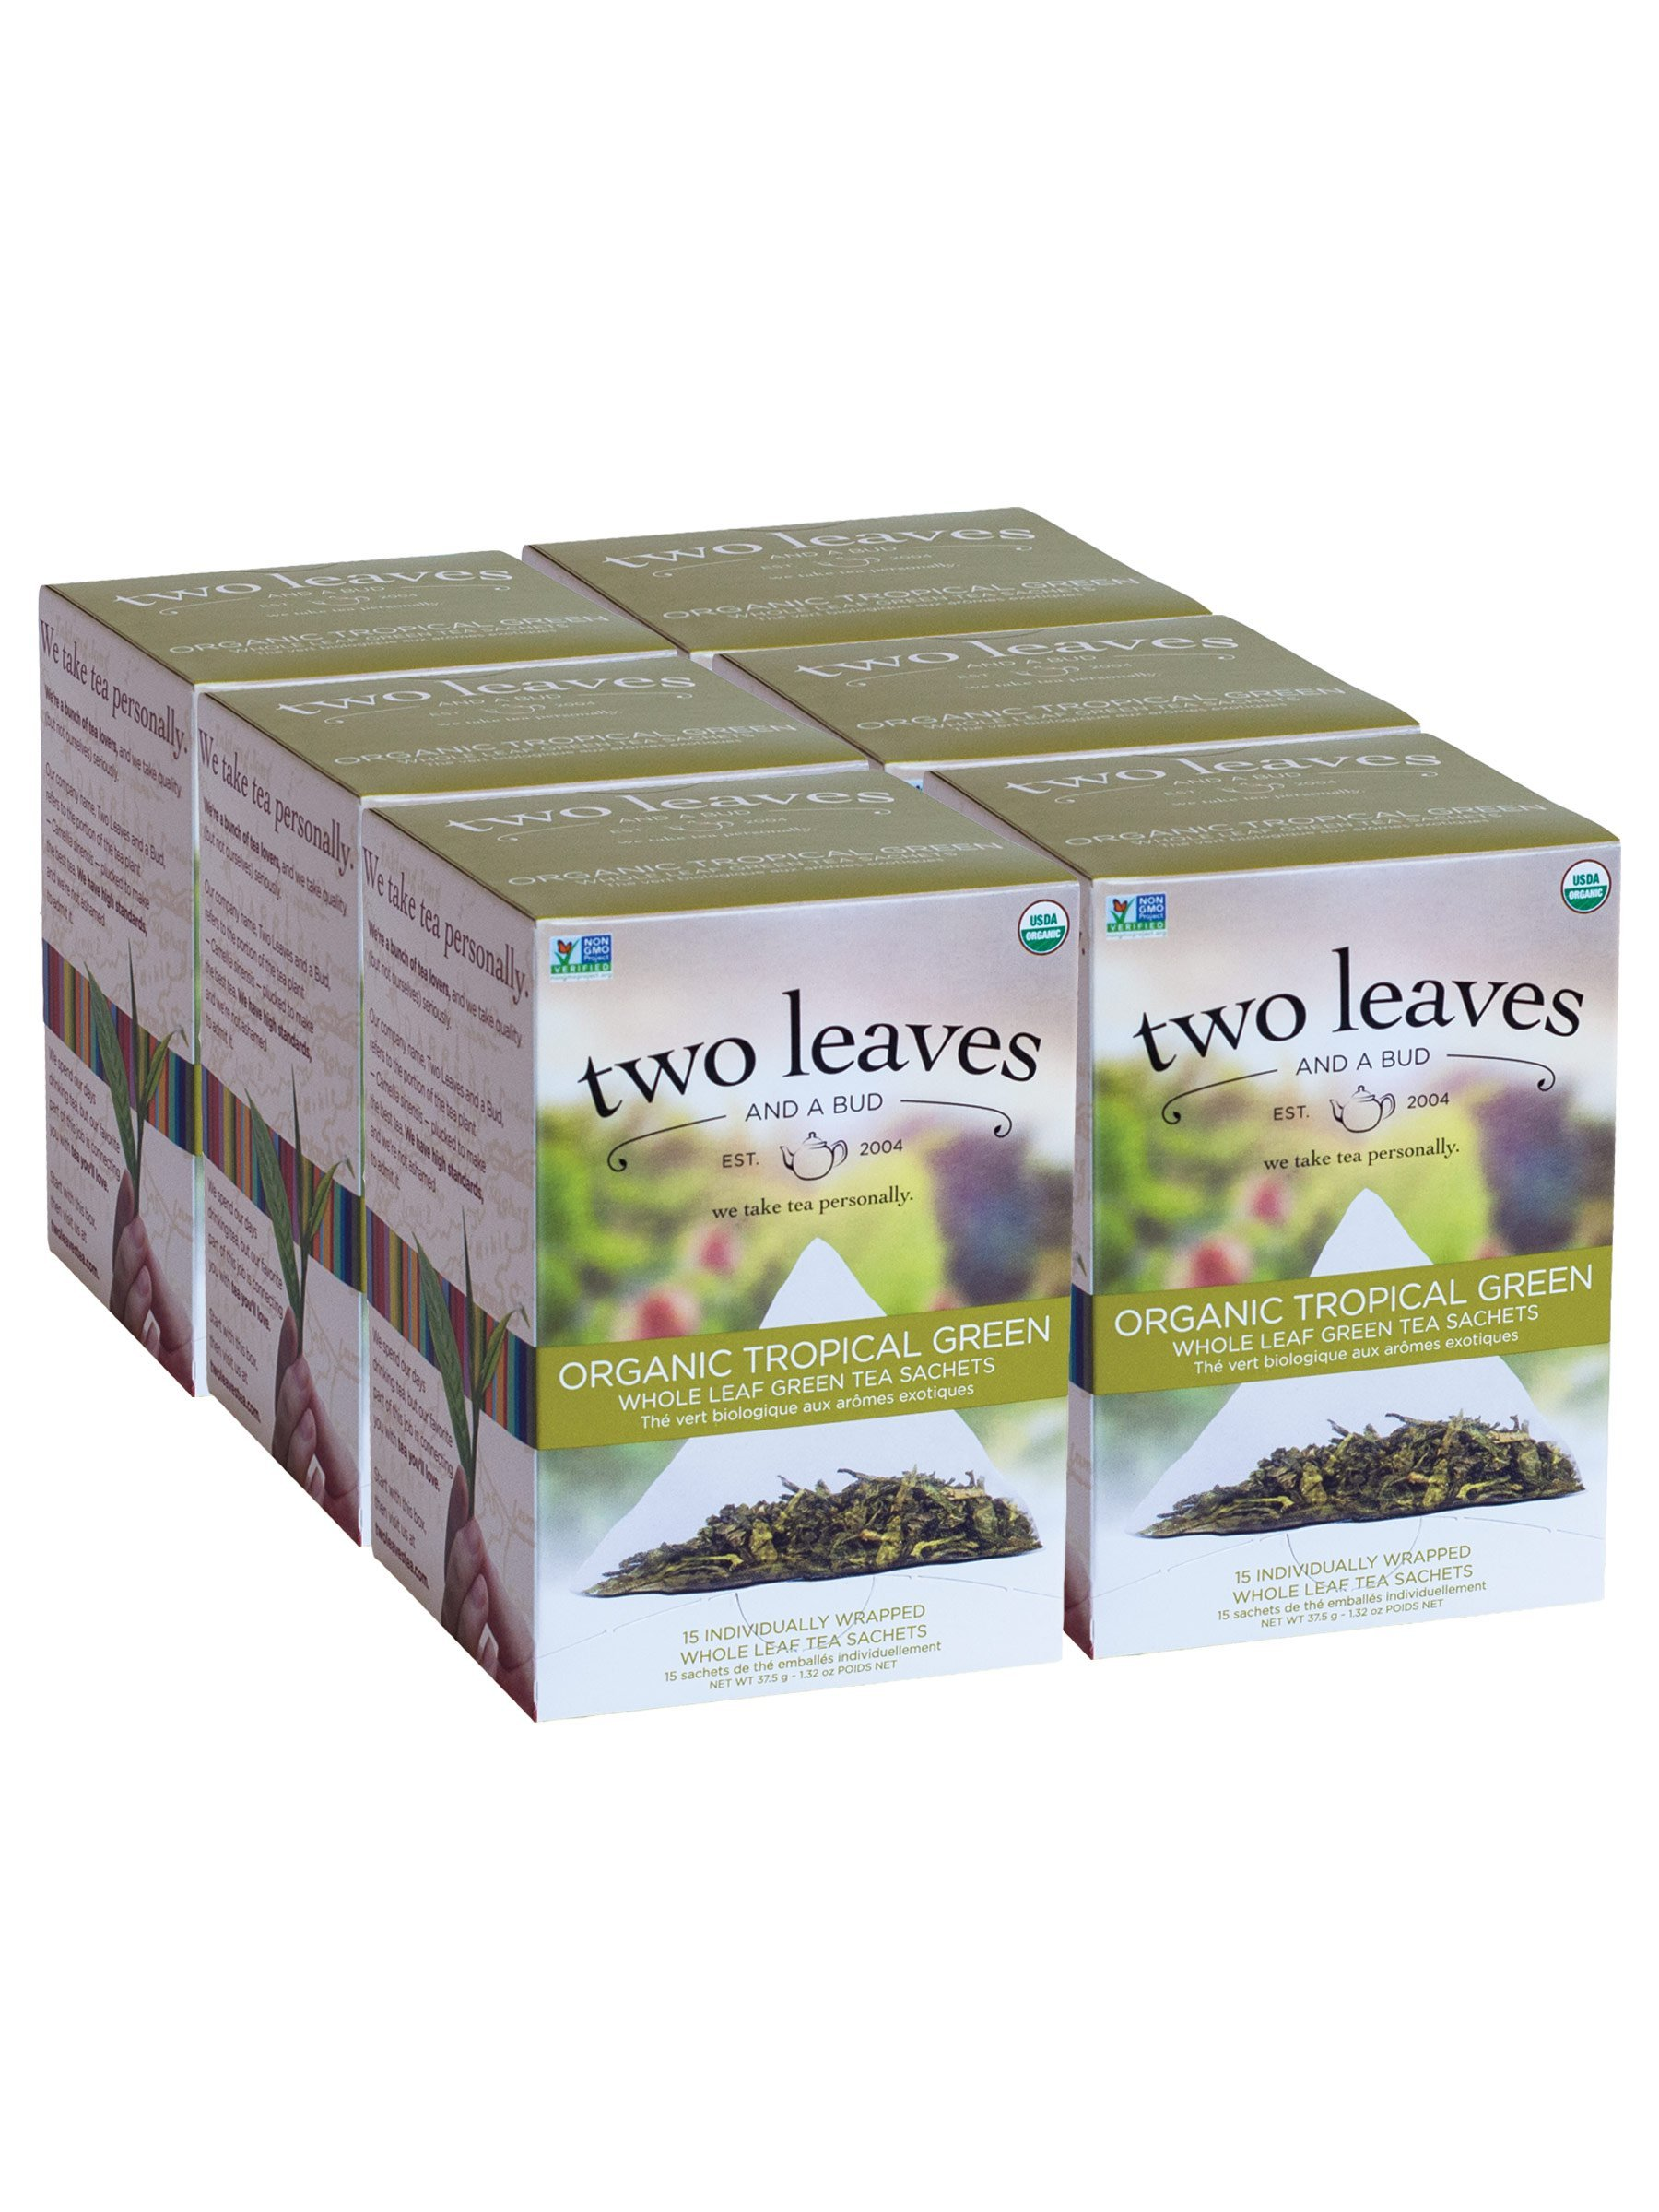 Two Leaves and a Bud Organic Tropical Green Tea Bags, 15 Count (Pack of 6) Organic Whole Leaf Moderate Caffeine Green Tea in Pyramid Sachet Bags, Delicious Hot or Iced, with Sugar or Honey or Plain